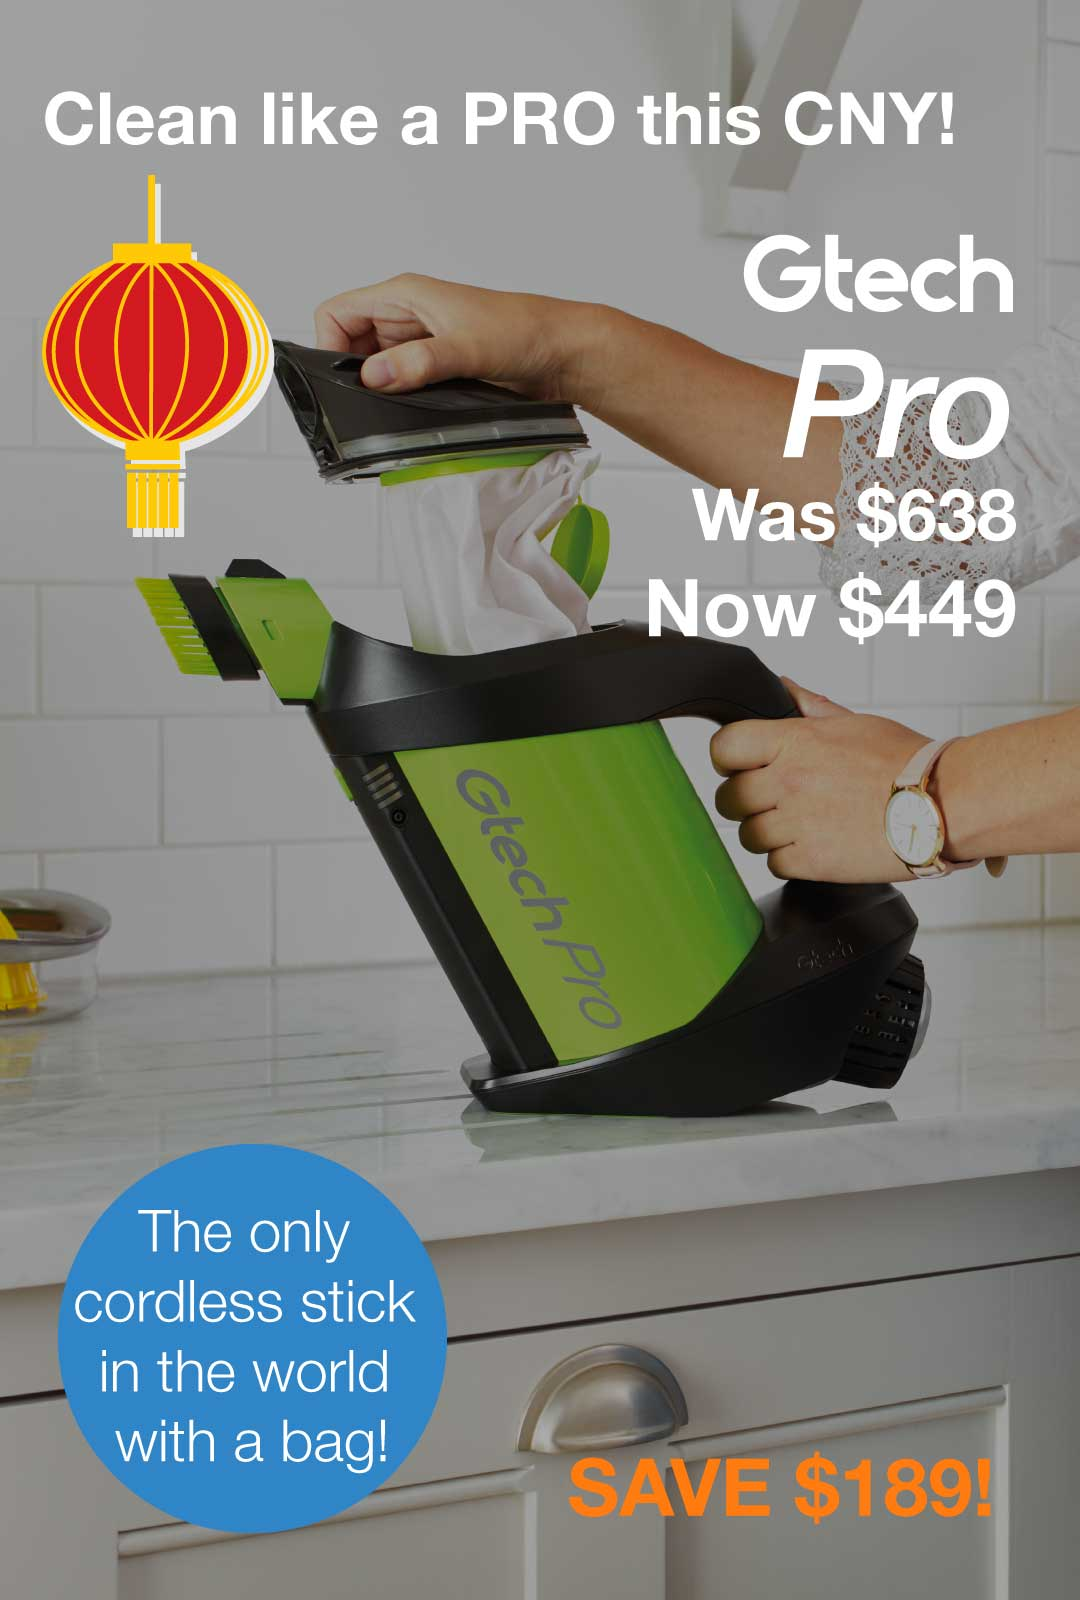 Gtech Pro bagged vacuum offer